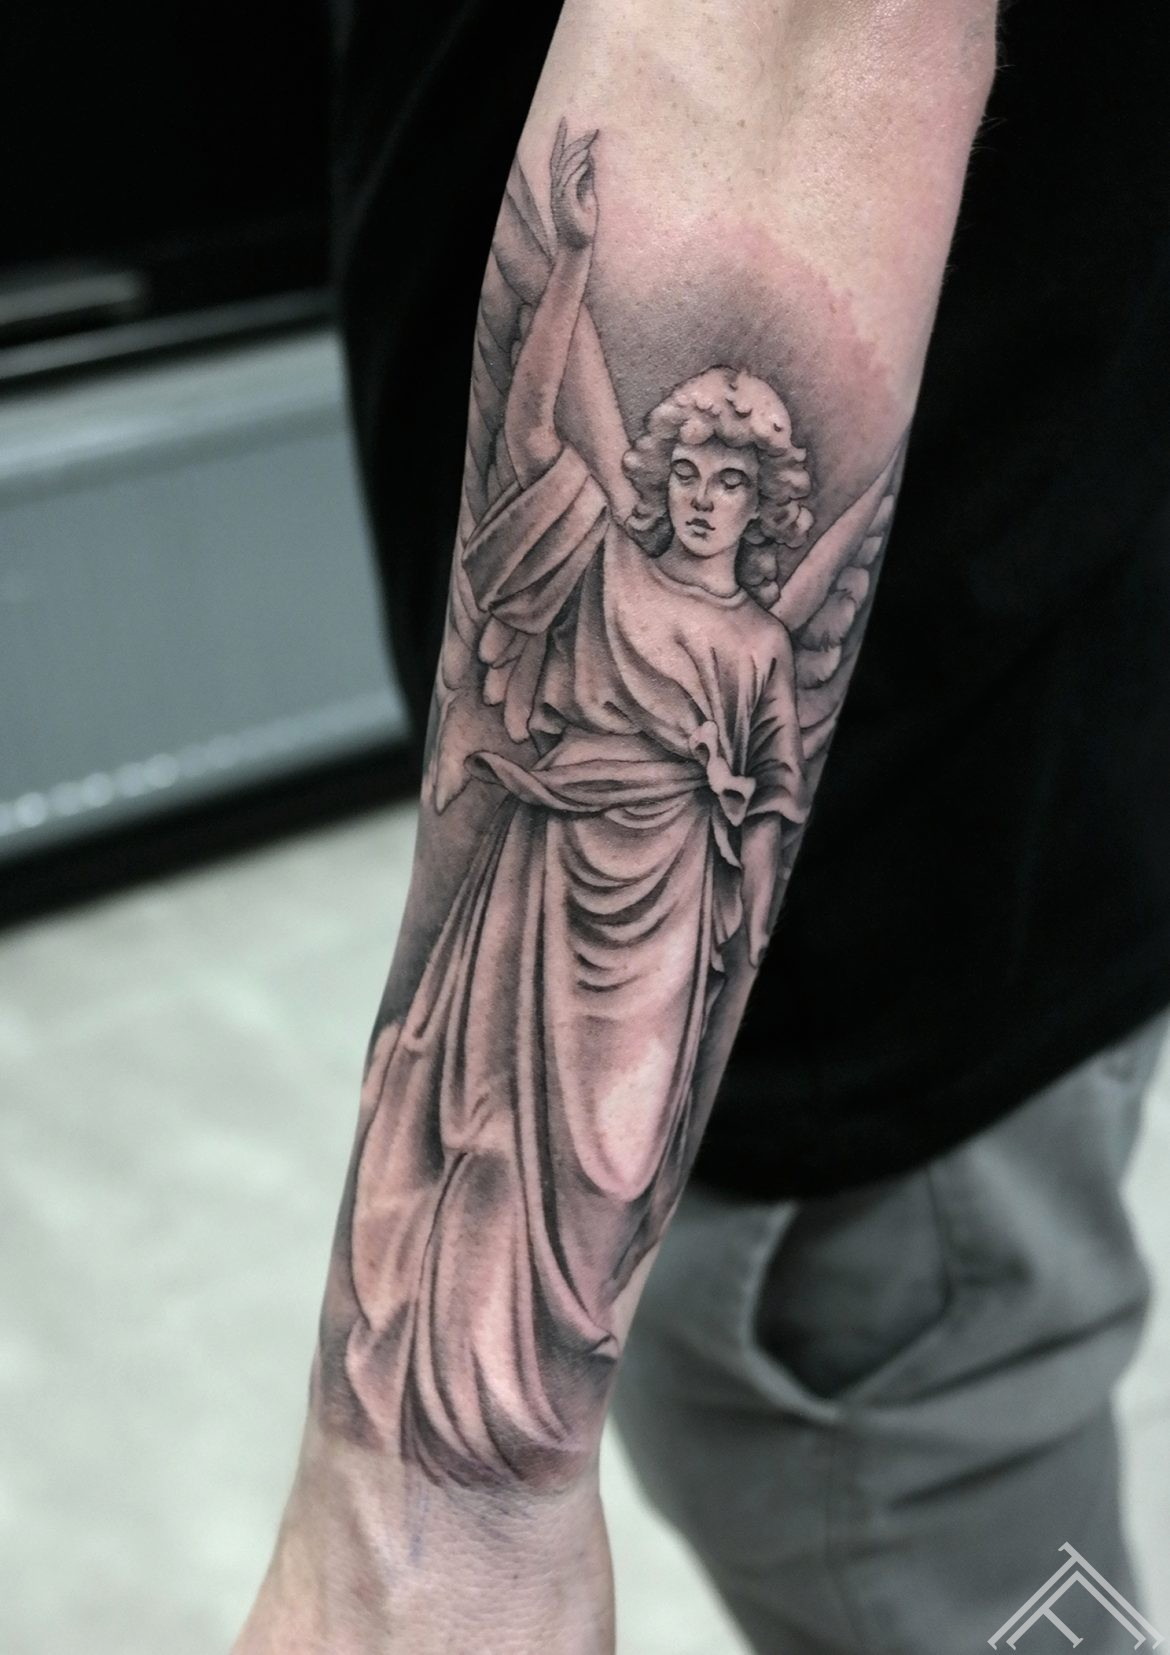 angel-enģelis-tattoo-tetovejums-riga-tattoofrequency-art-skulptura